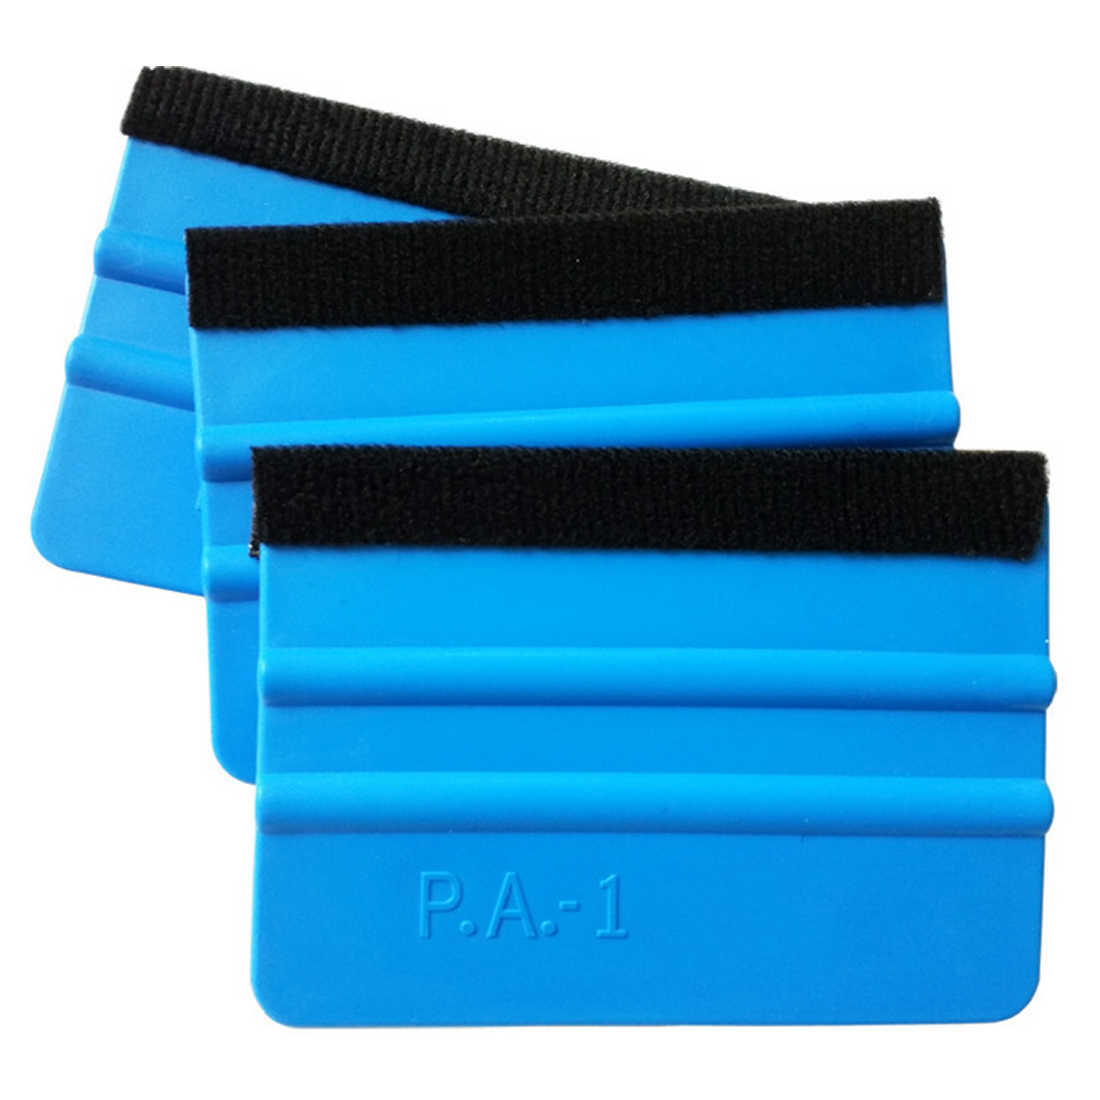 Car Vinyl Film Wrapping Tools Blue Scraper Squeegee with Felt Edge Car Styling Stickers Accessories